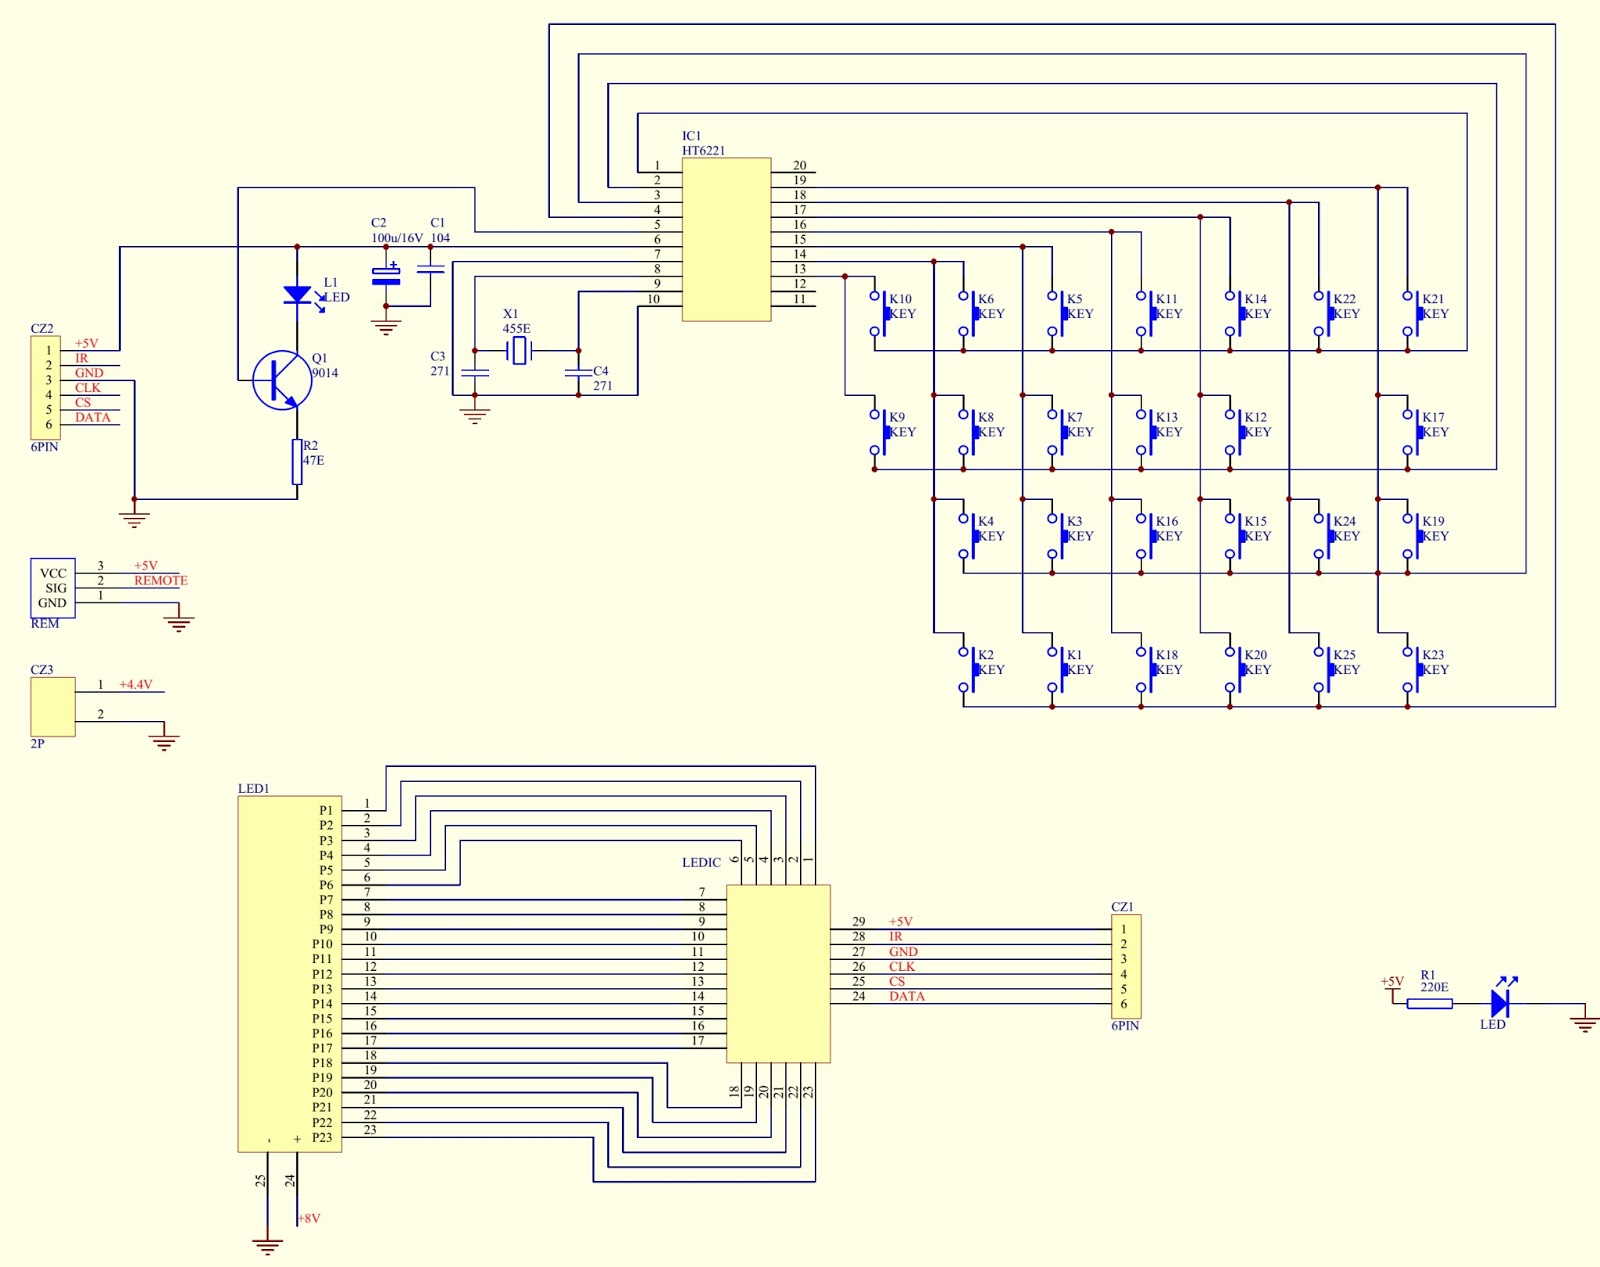 untitled.bmp schematic diagram circuit diagram universal remote control setup